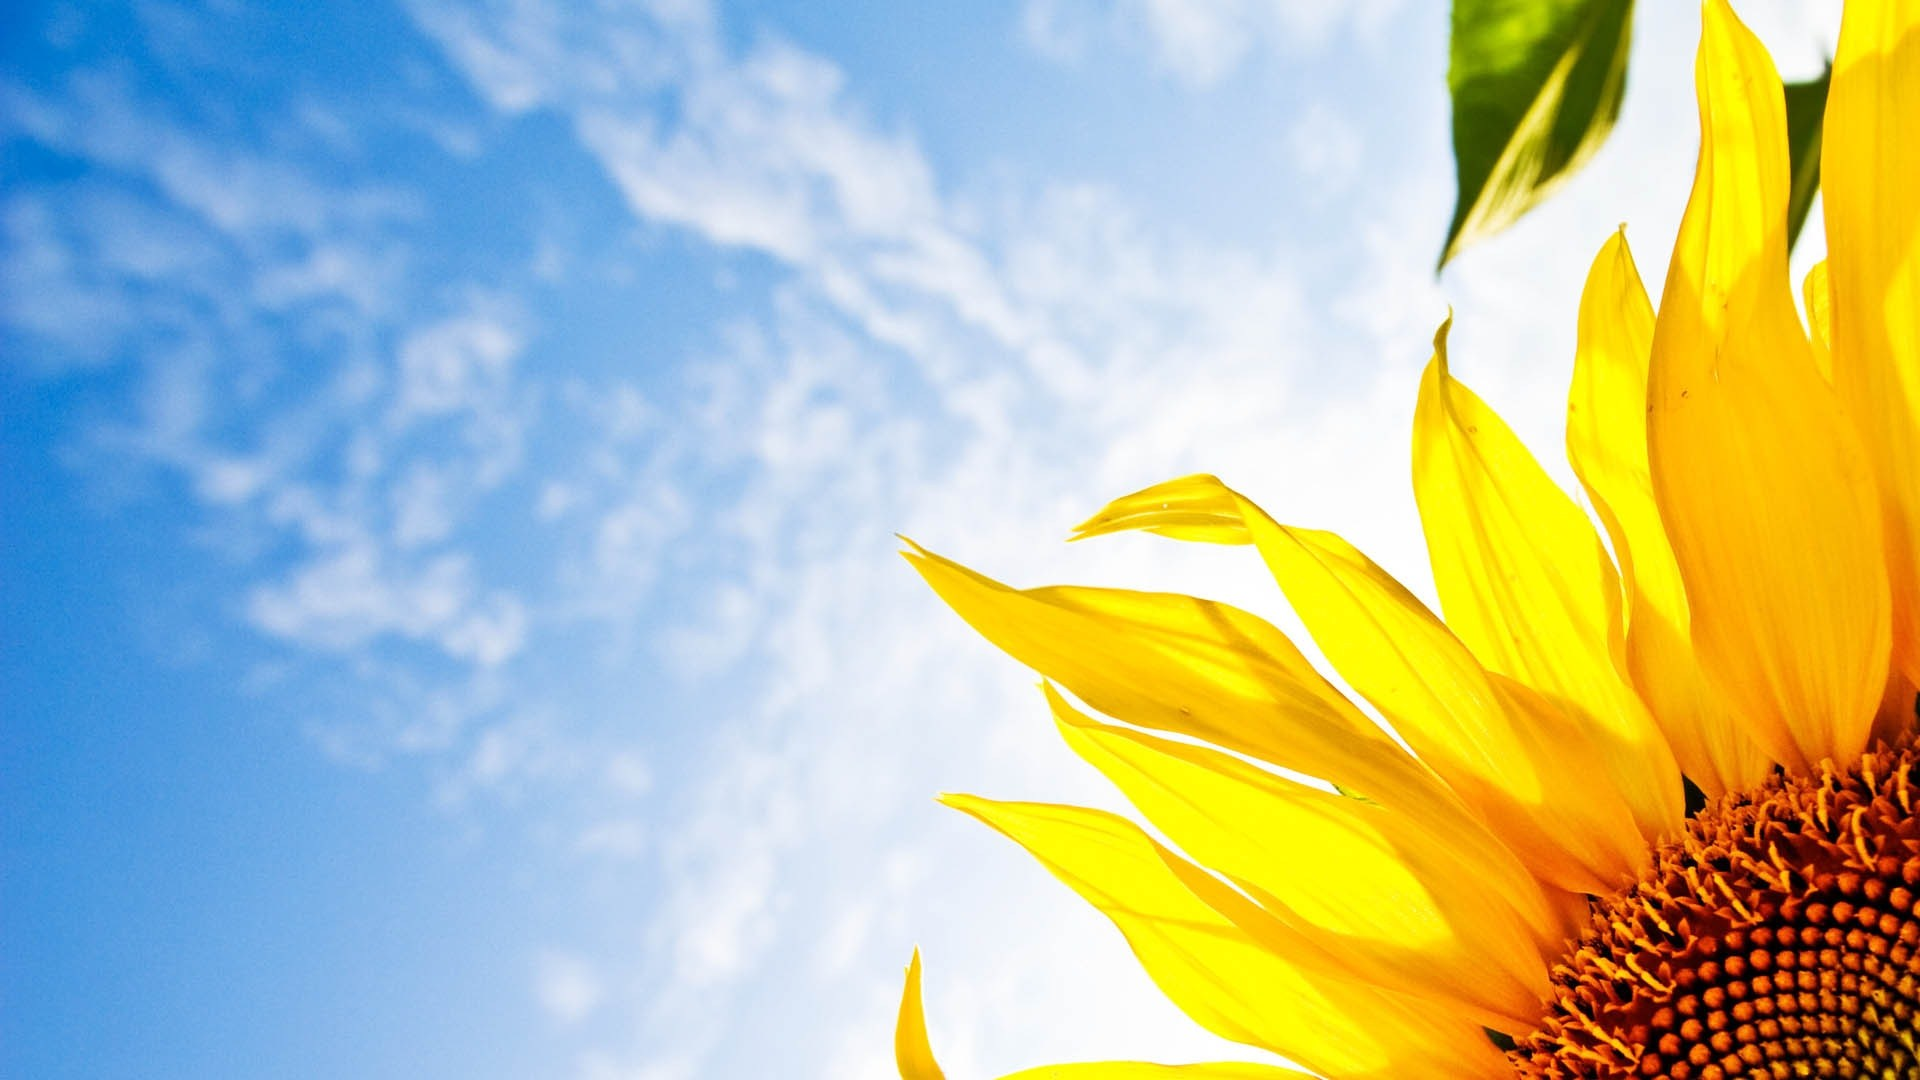 Amazing Wallpaper Macbook Sunflower - Flower-Sunflower-Sky-Wallpaper-1920x1080  Perfect Image Reference_41774.jpg